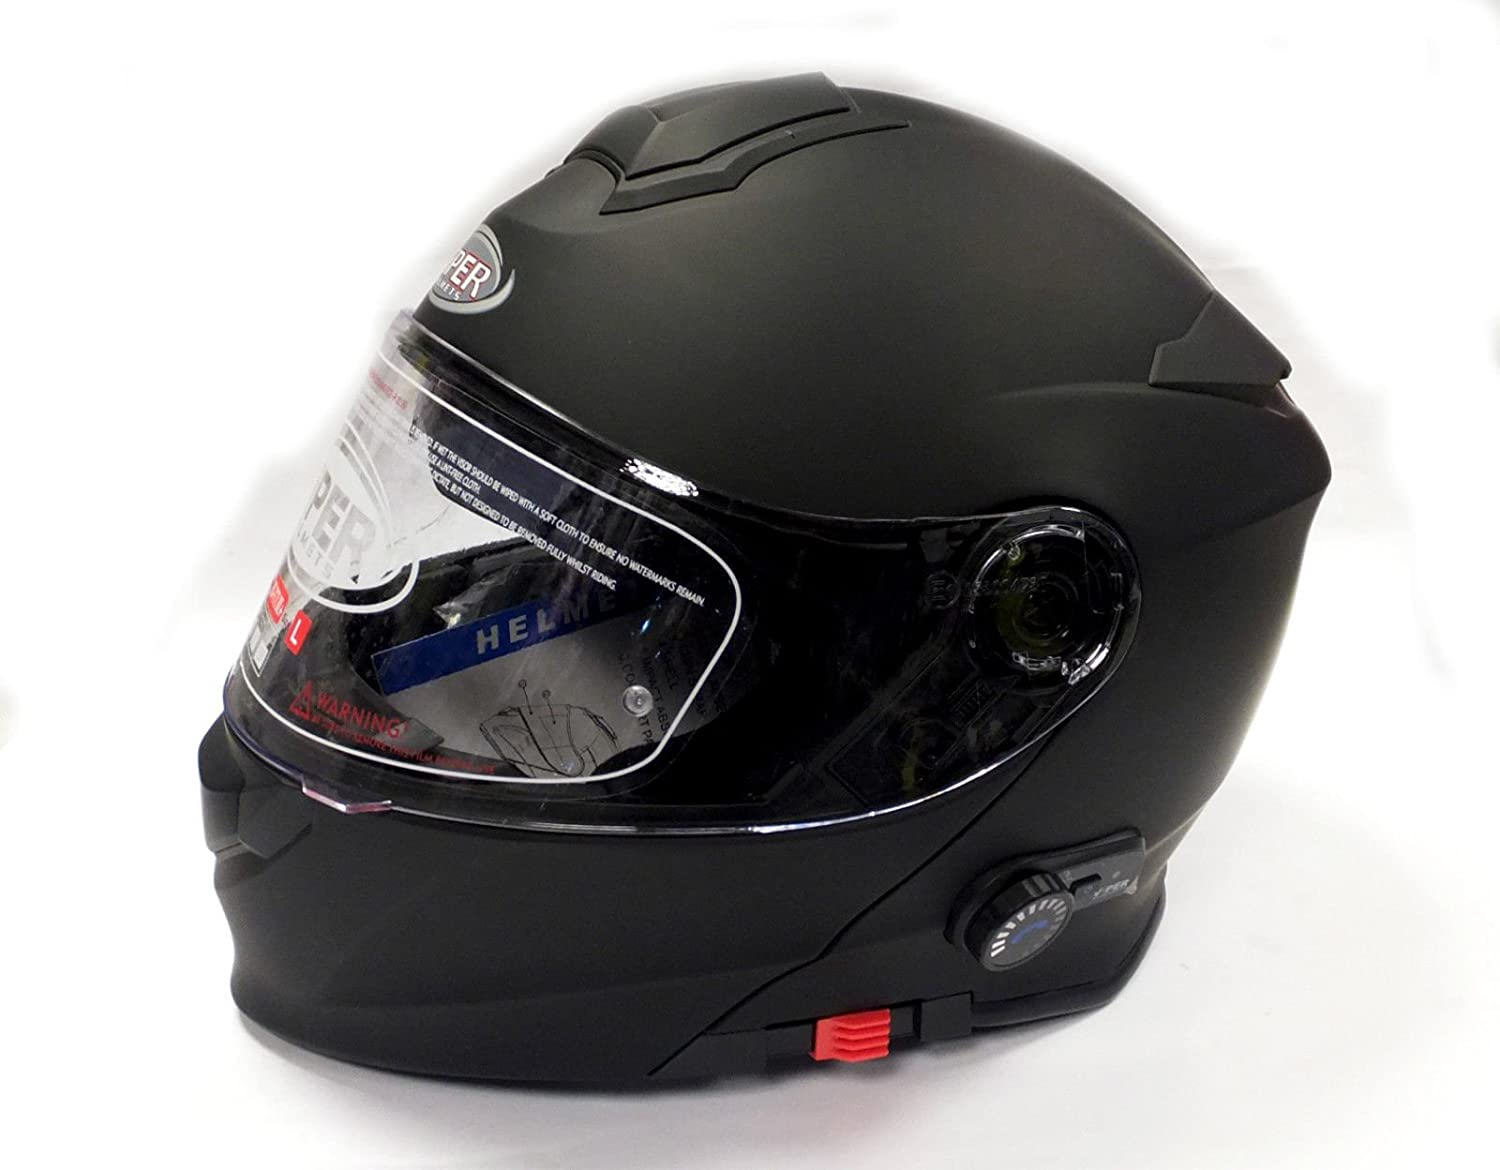 Amazon.es: Viper A092HV RSV151 Casco para Motocicleta con Altavoces Bluetooth